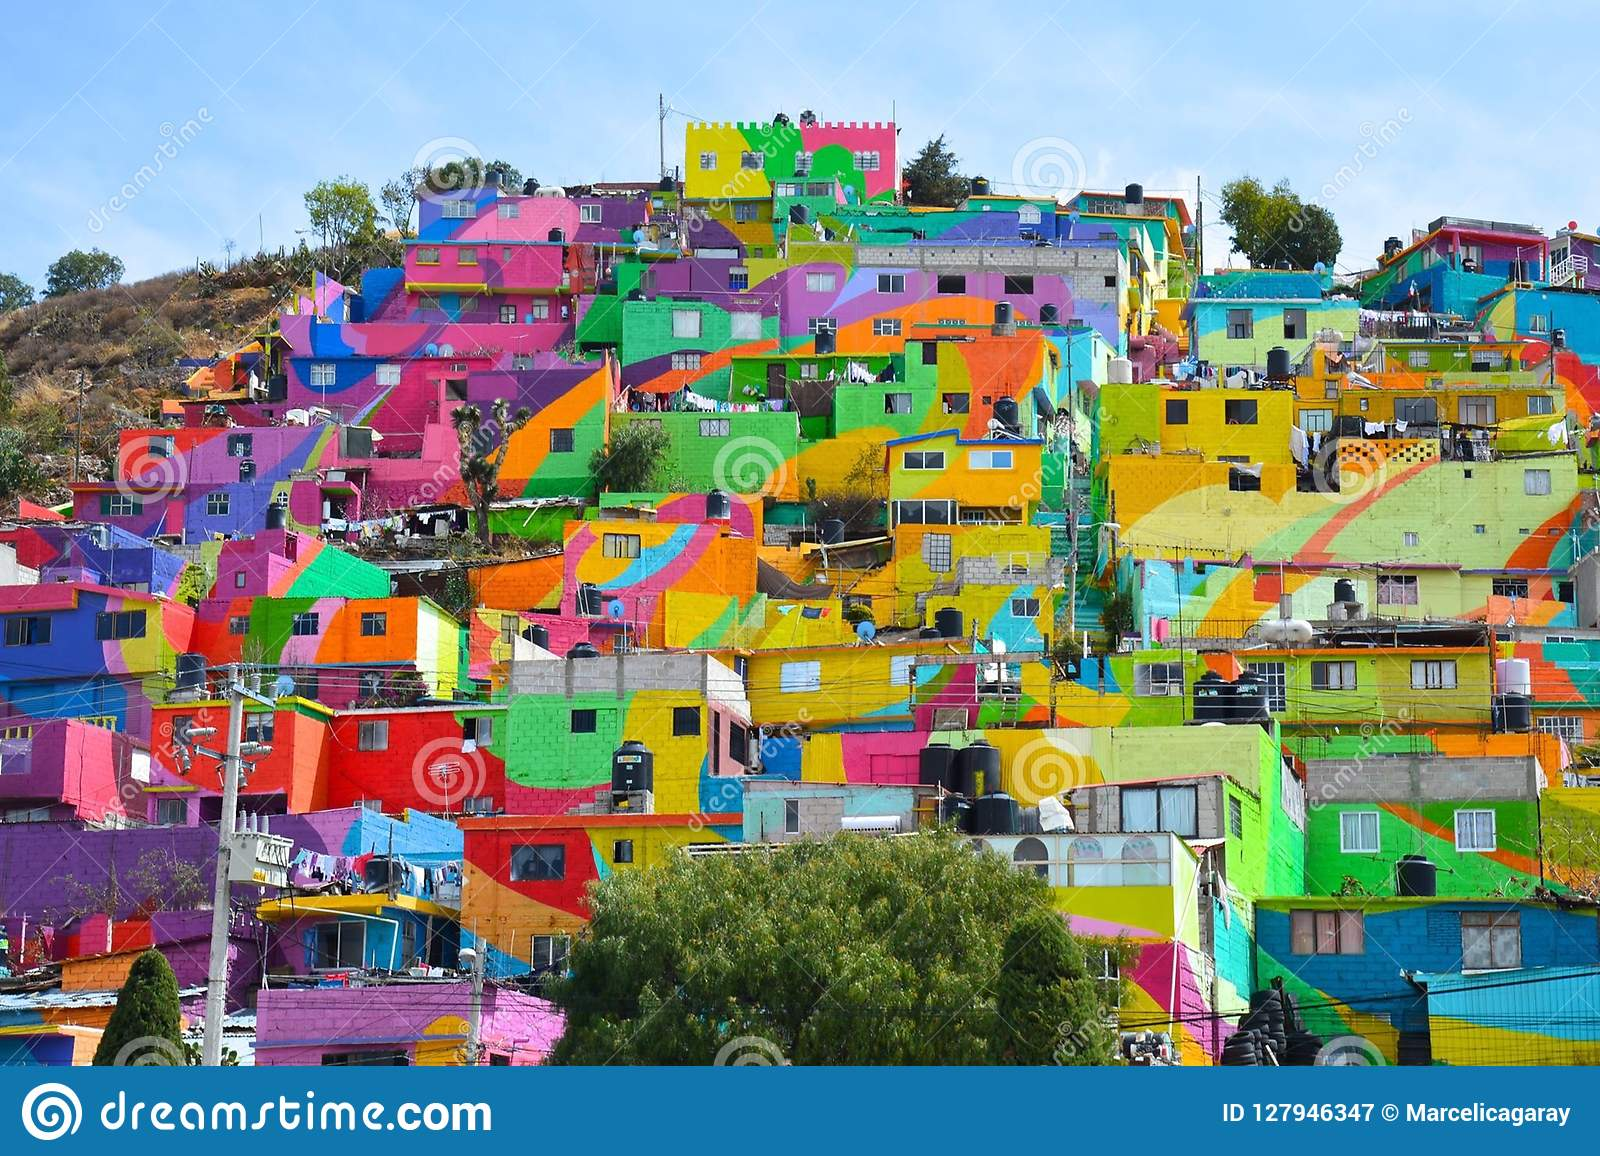 Colorful Houses Pachuca Mexico Stock Image Image Of Houses